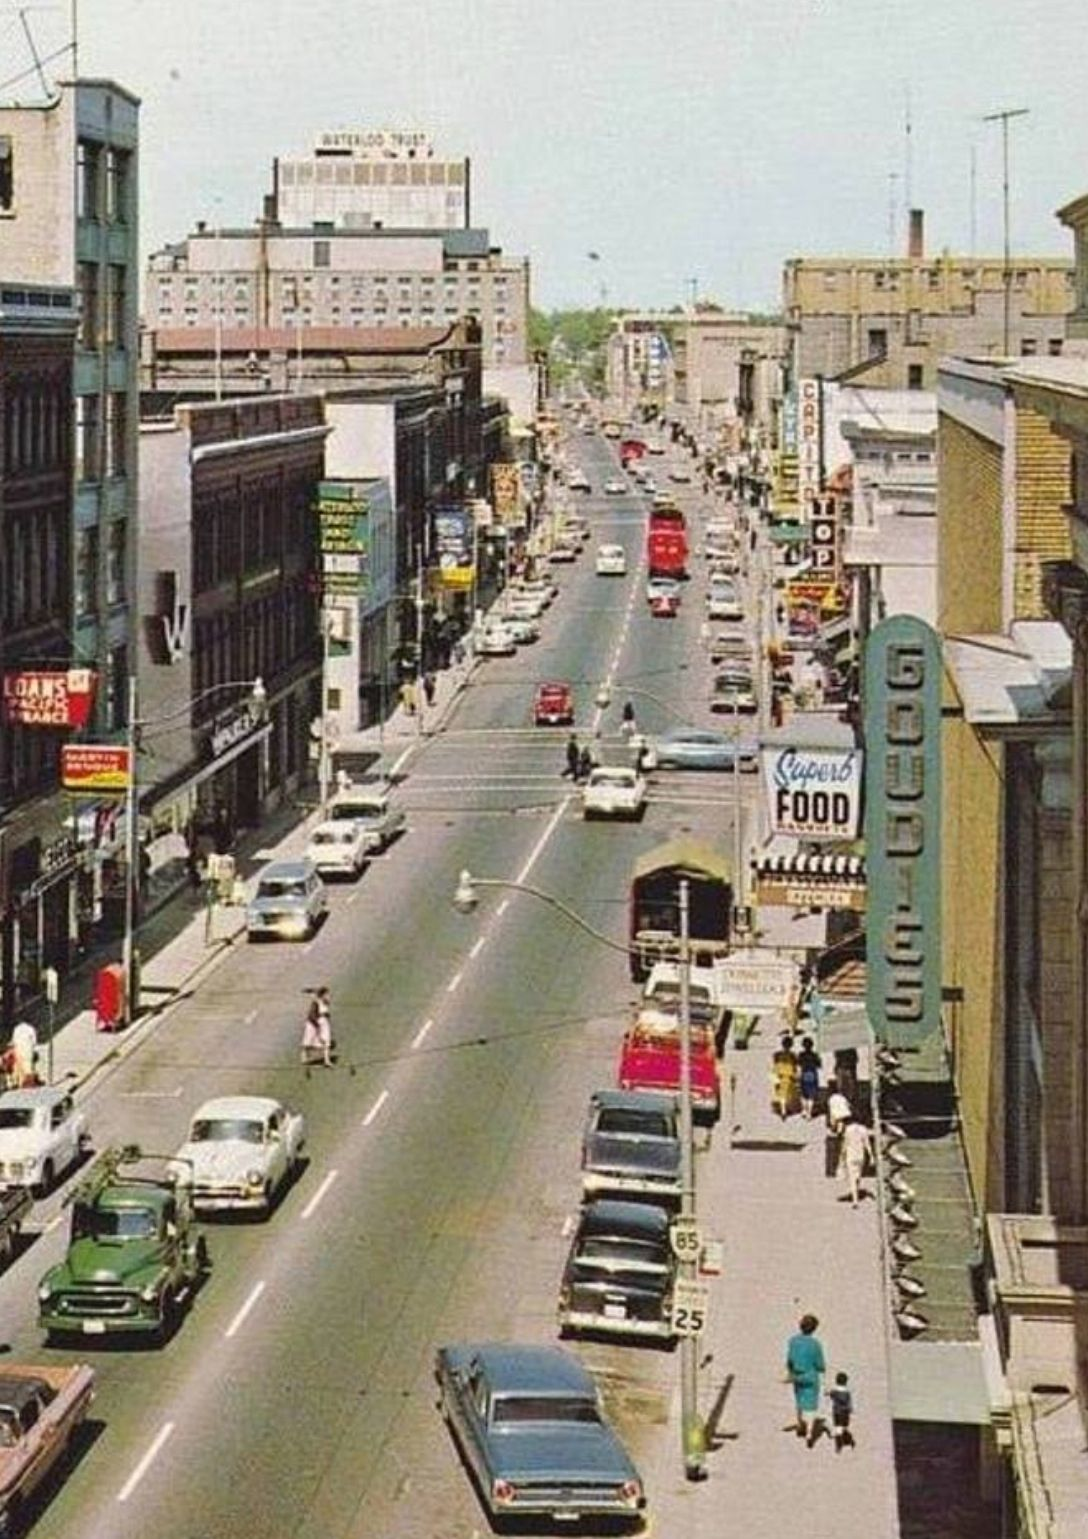 stores kitchener waterloo king st kitchener goudies dept store on right canada